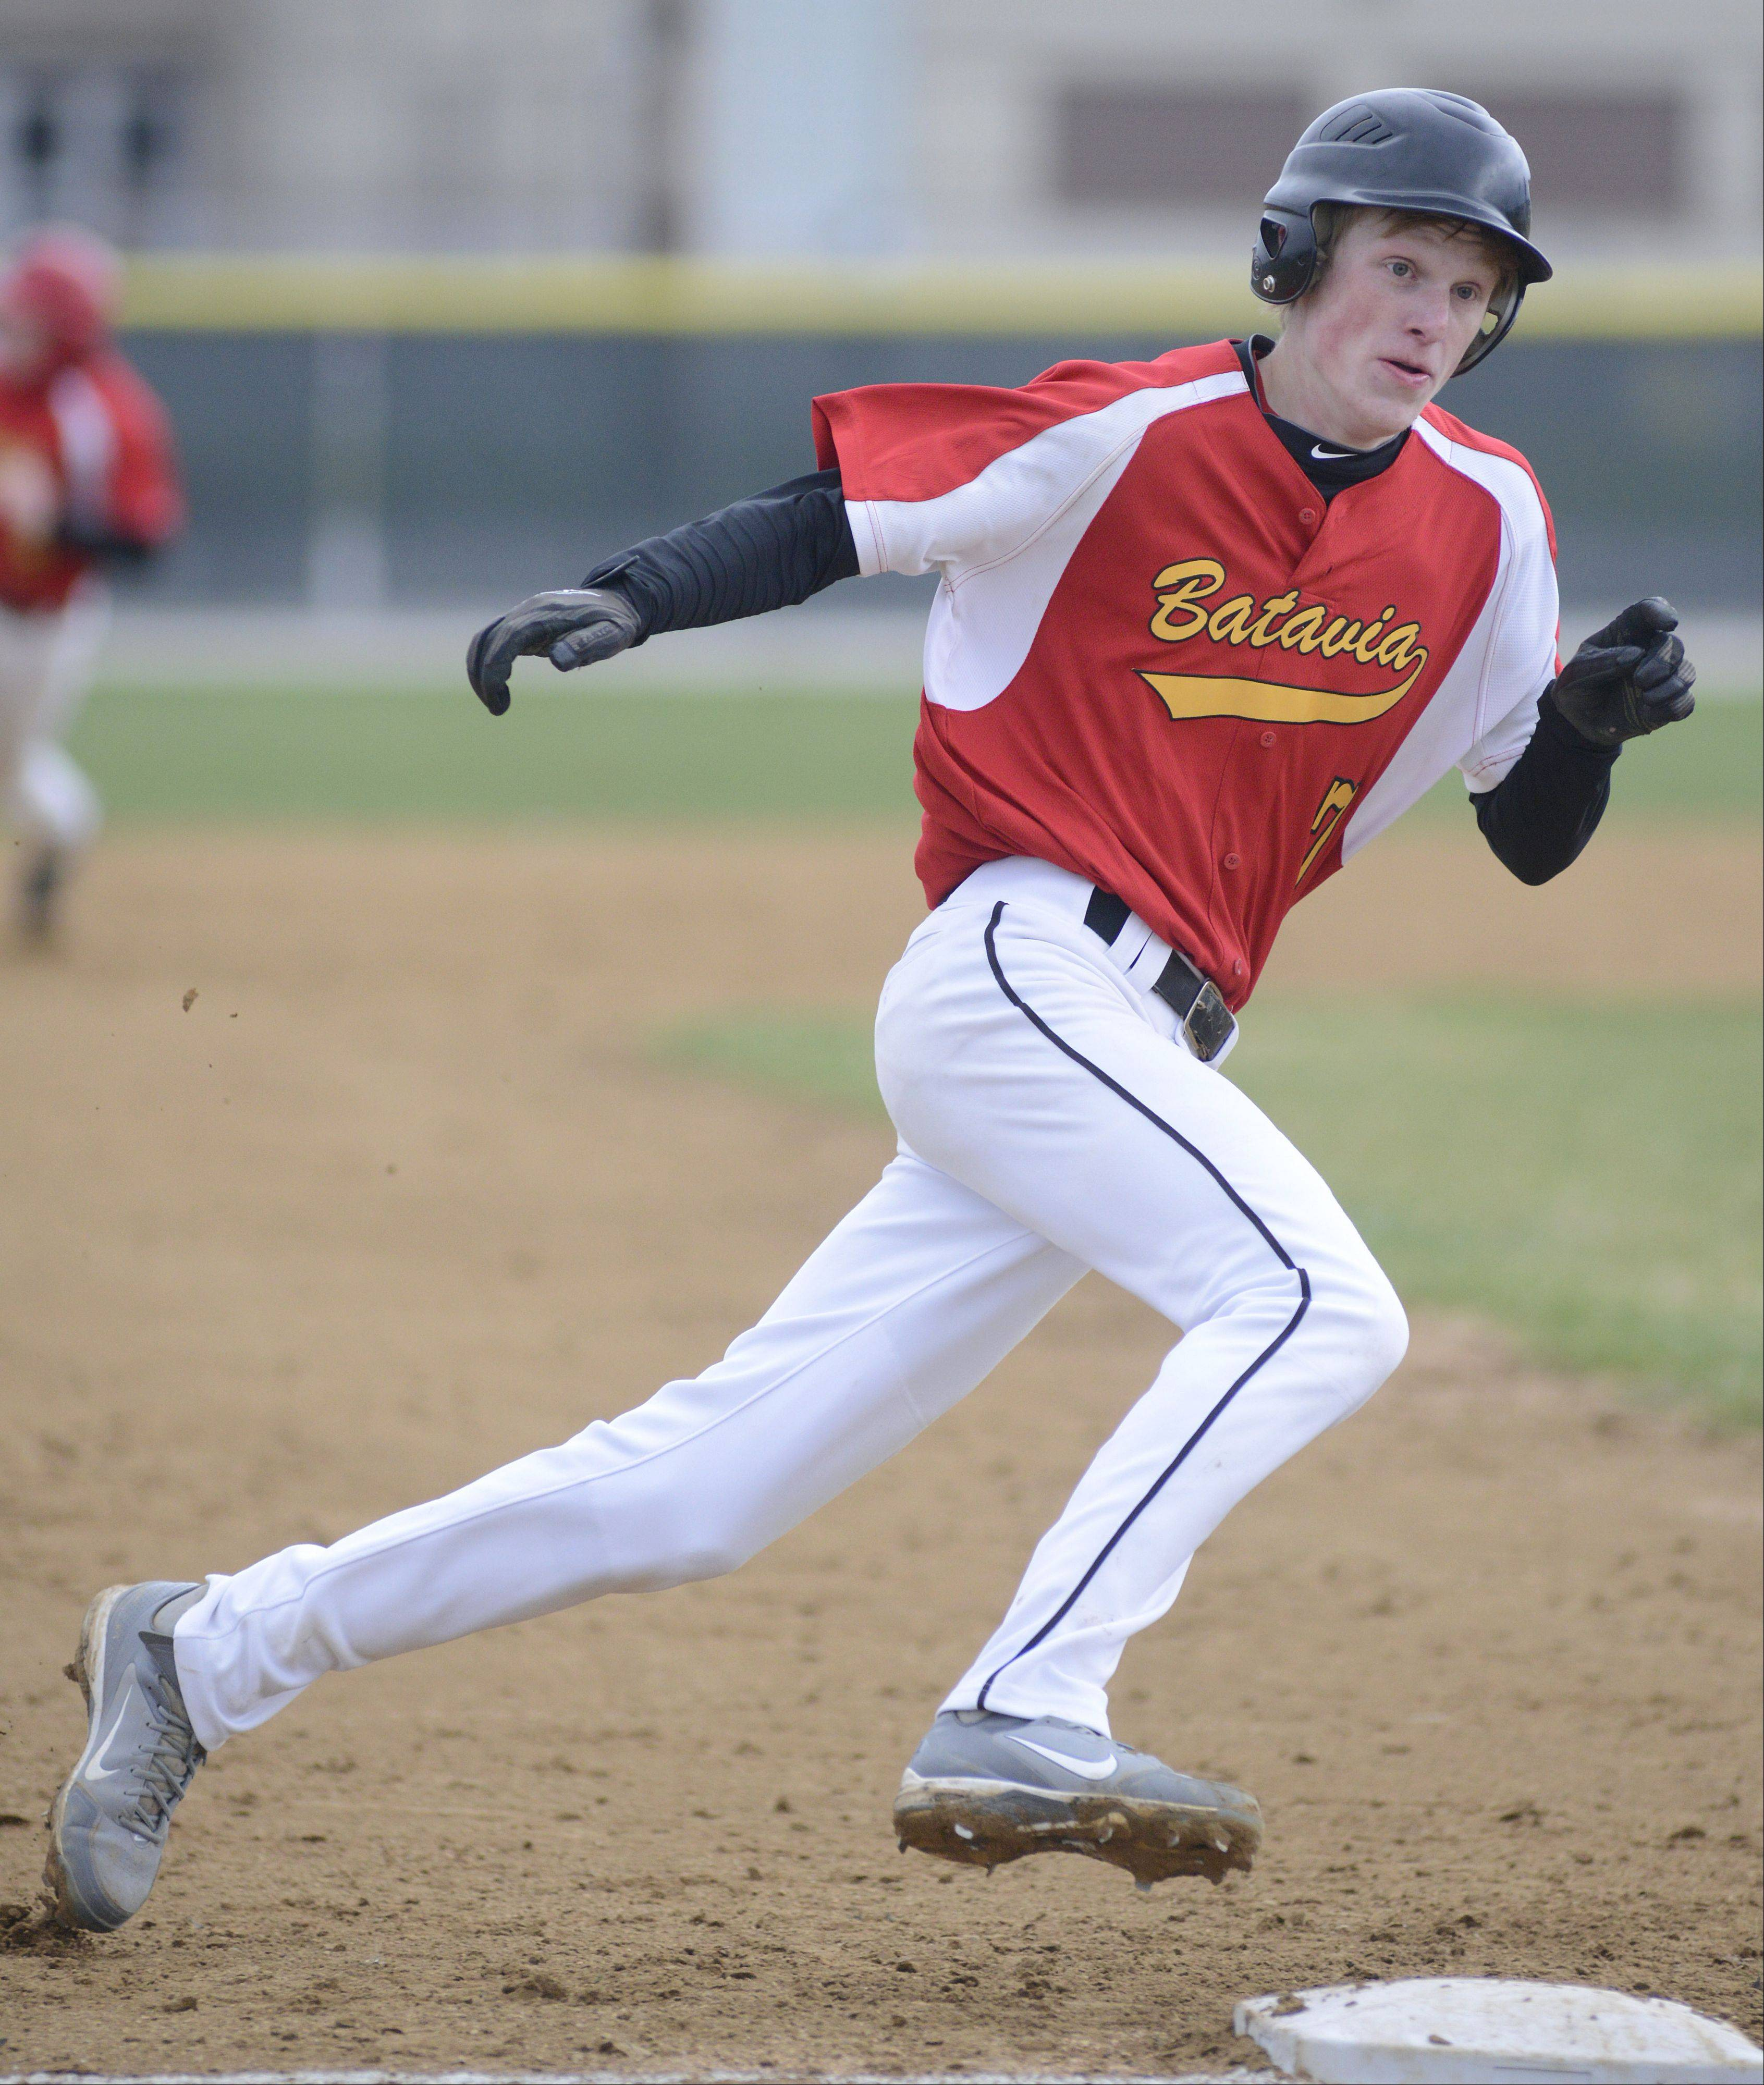 Batavia�s Andrew Seigler rounds third base on his way to home plate in the second inning on Friday, April 12.